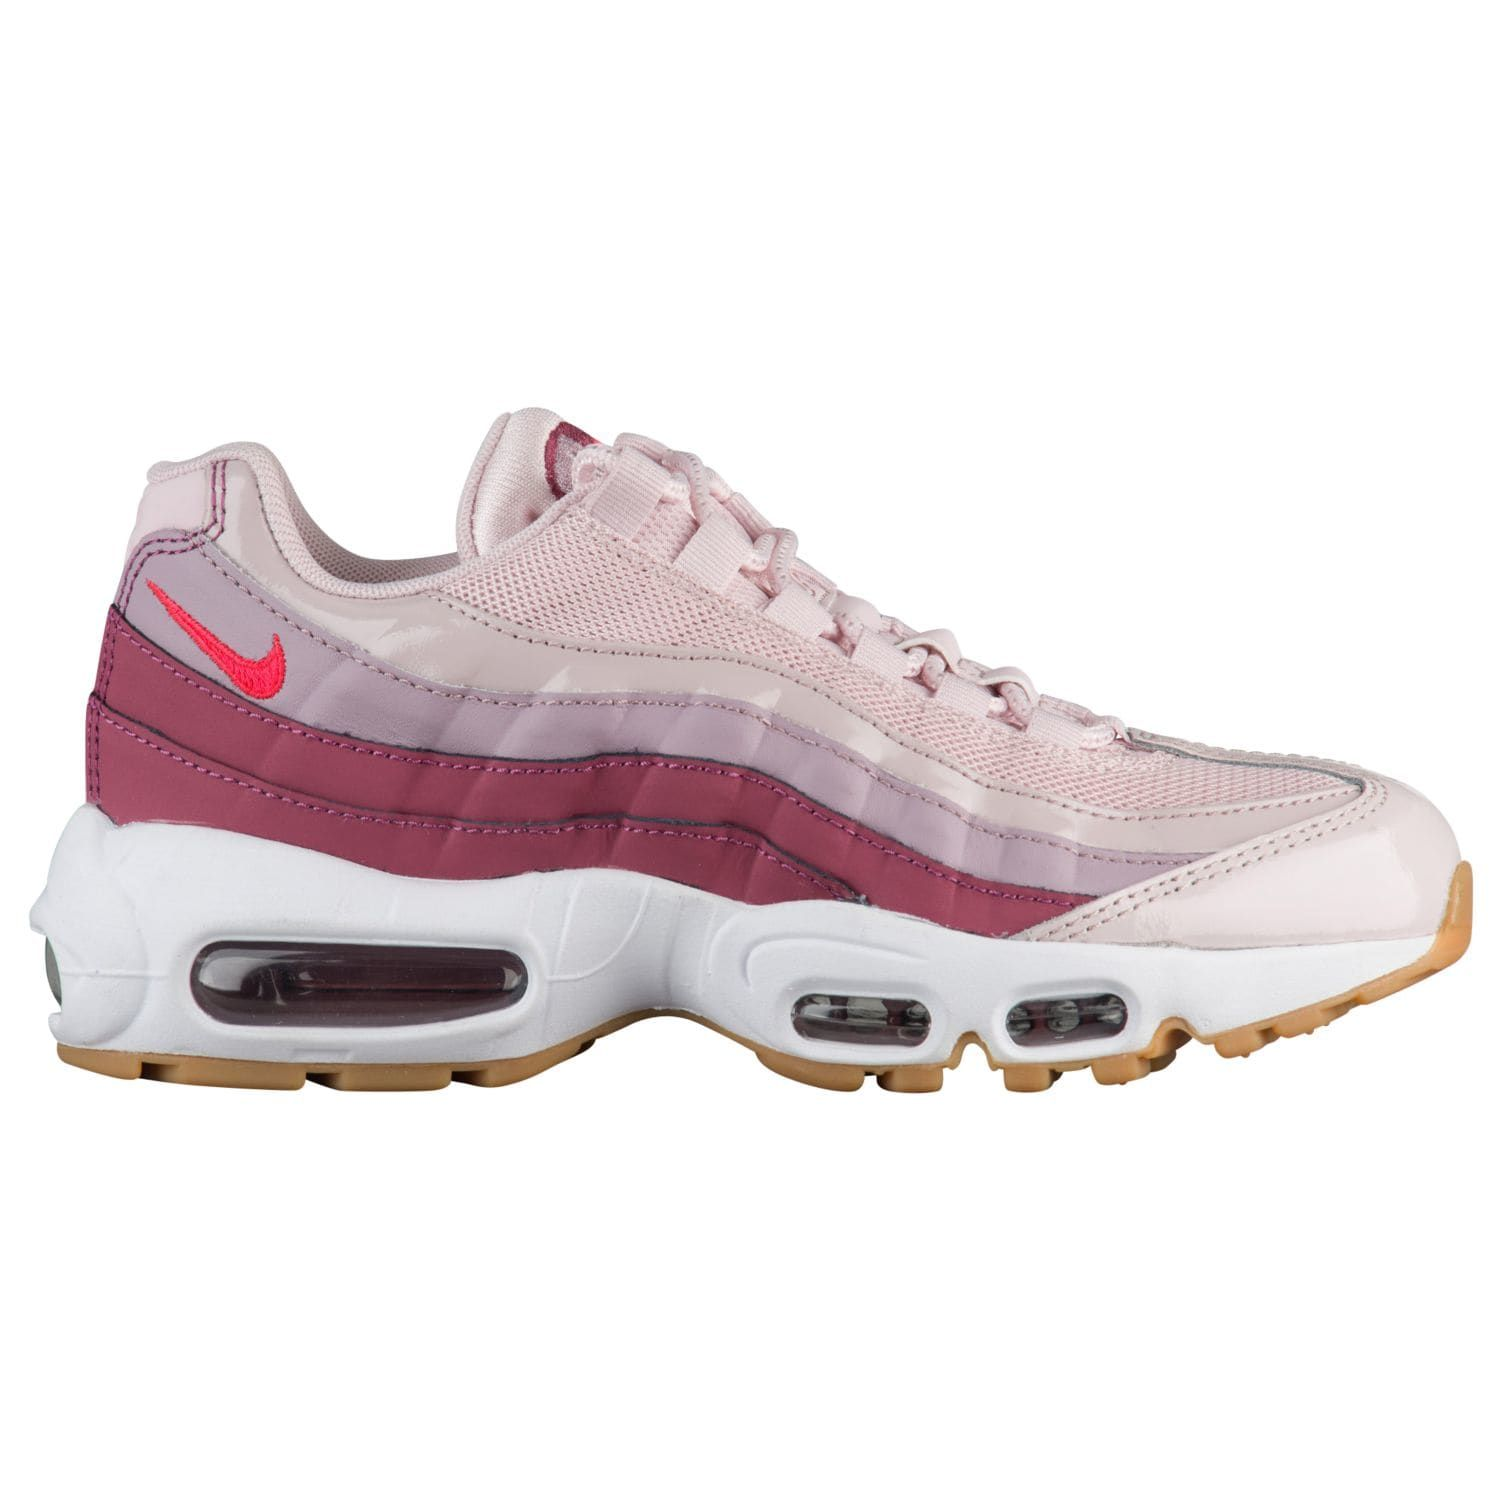 5256a6307415f4 ... closeout nike air max 95 womens at champs sports 7af3c f3453